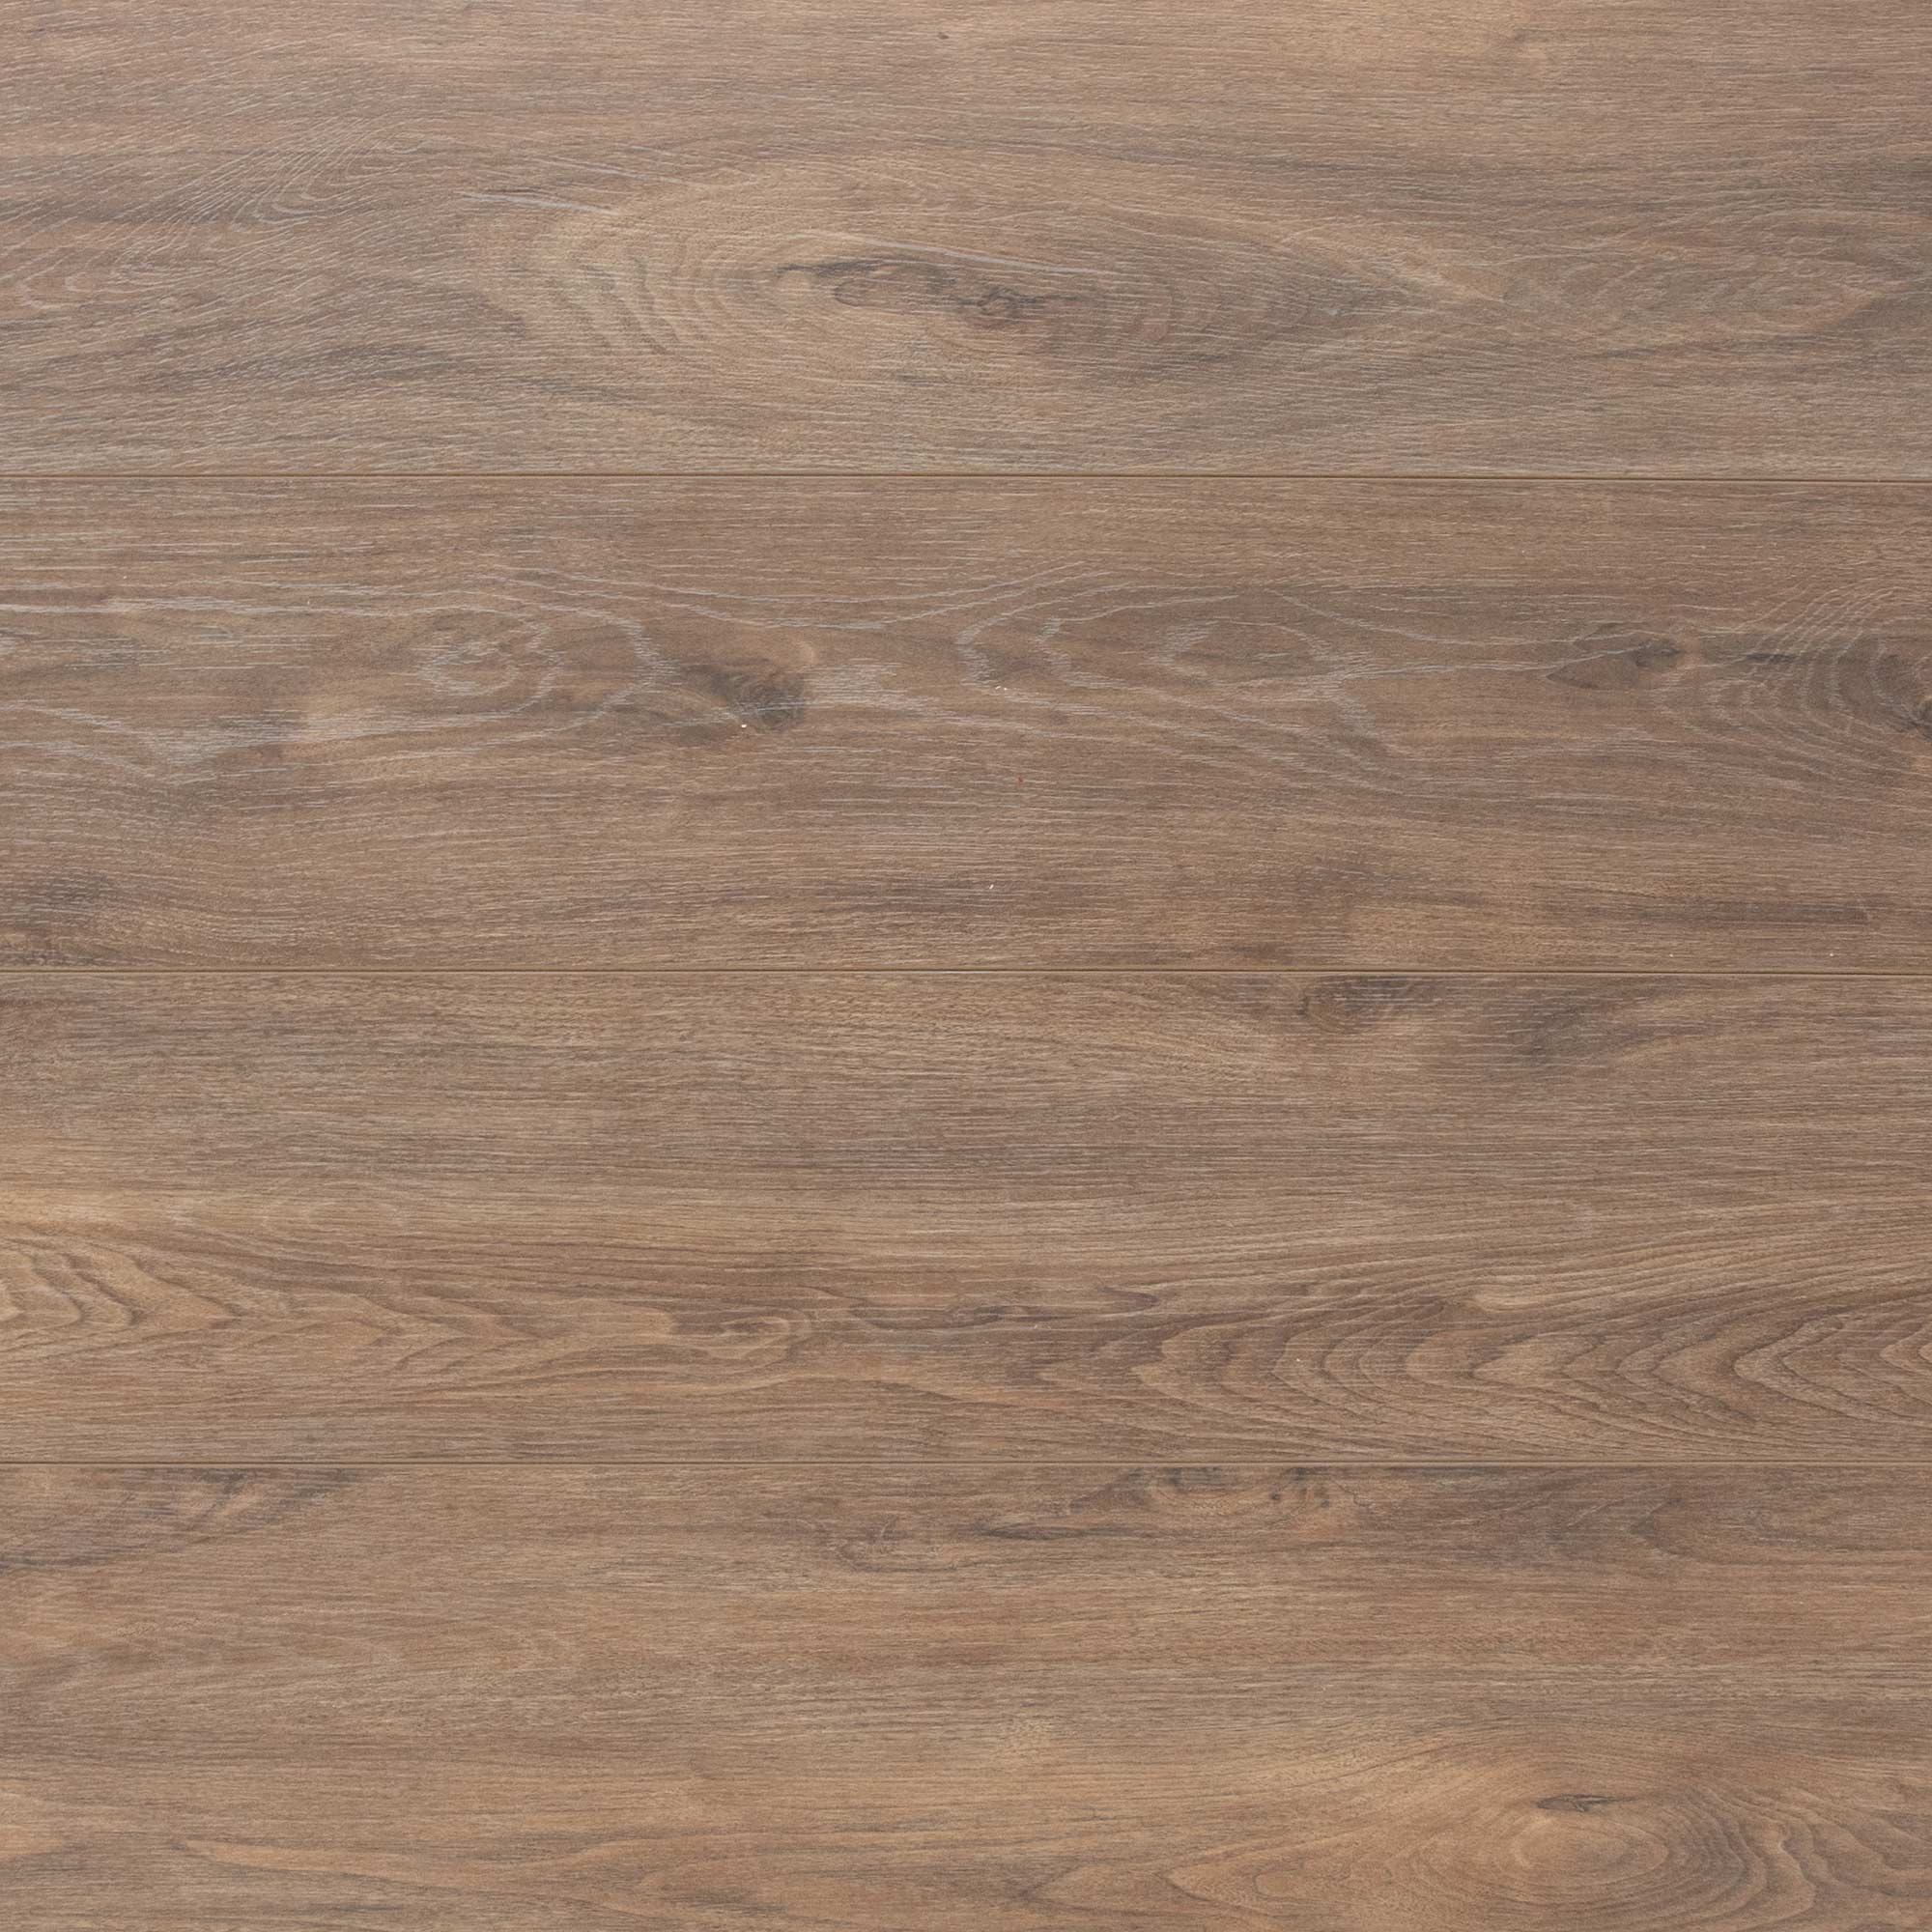 Smoked Walnut Laminate | AC4 8mm